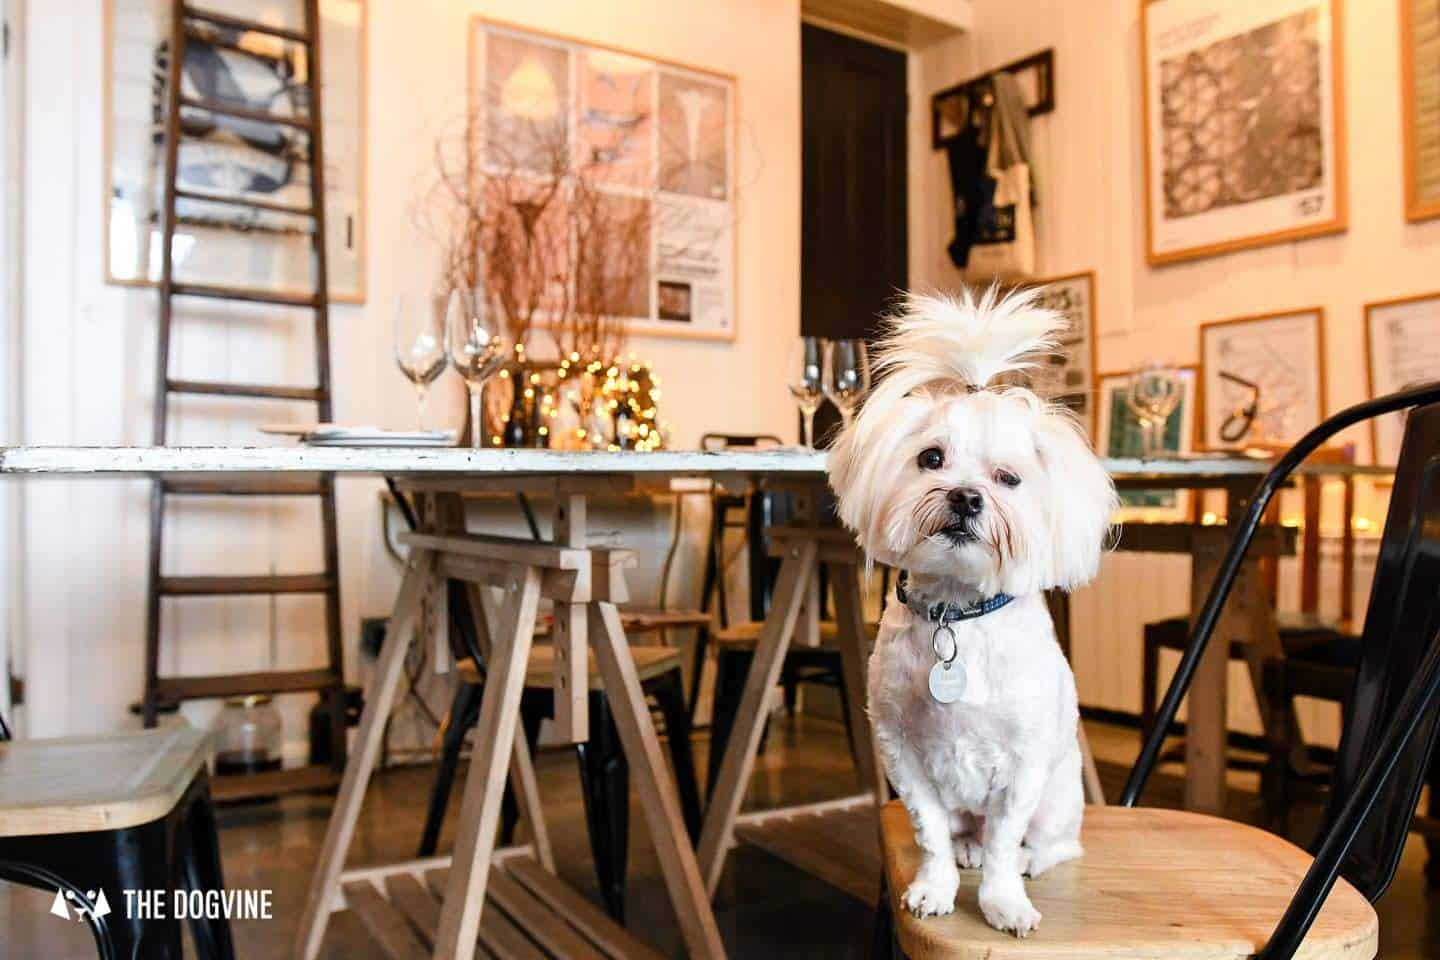 The-Best-of-Dog-friendly-St-Johns-by-Milo-the-Maltese-LOculto-2.jpg